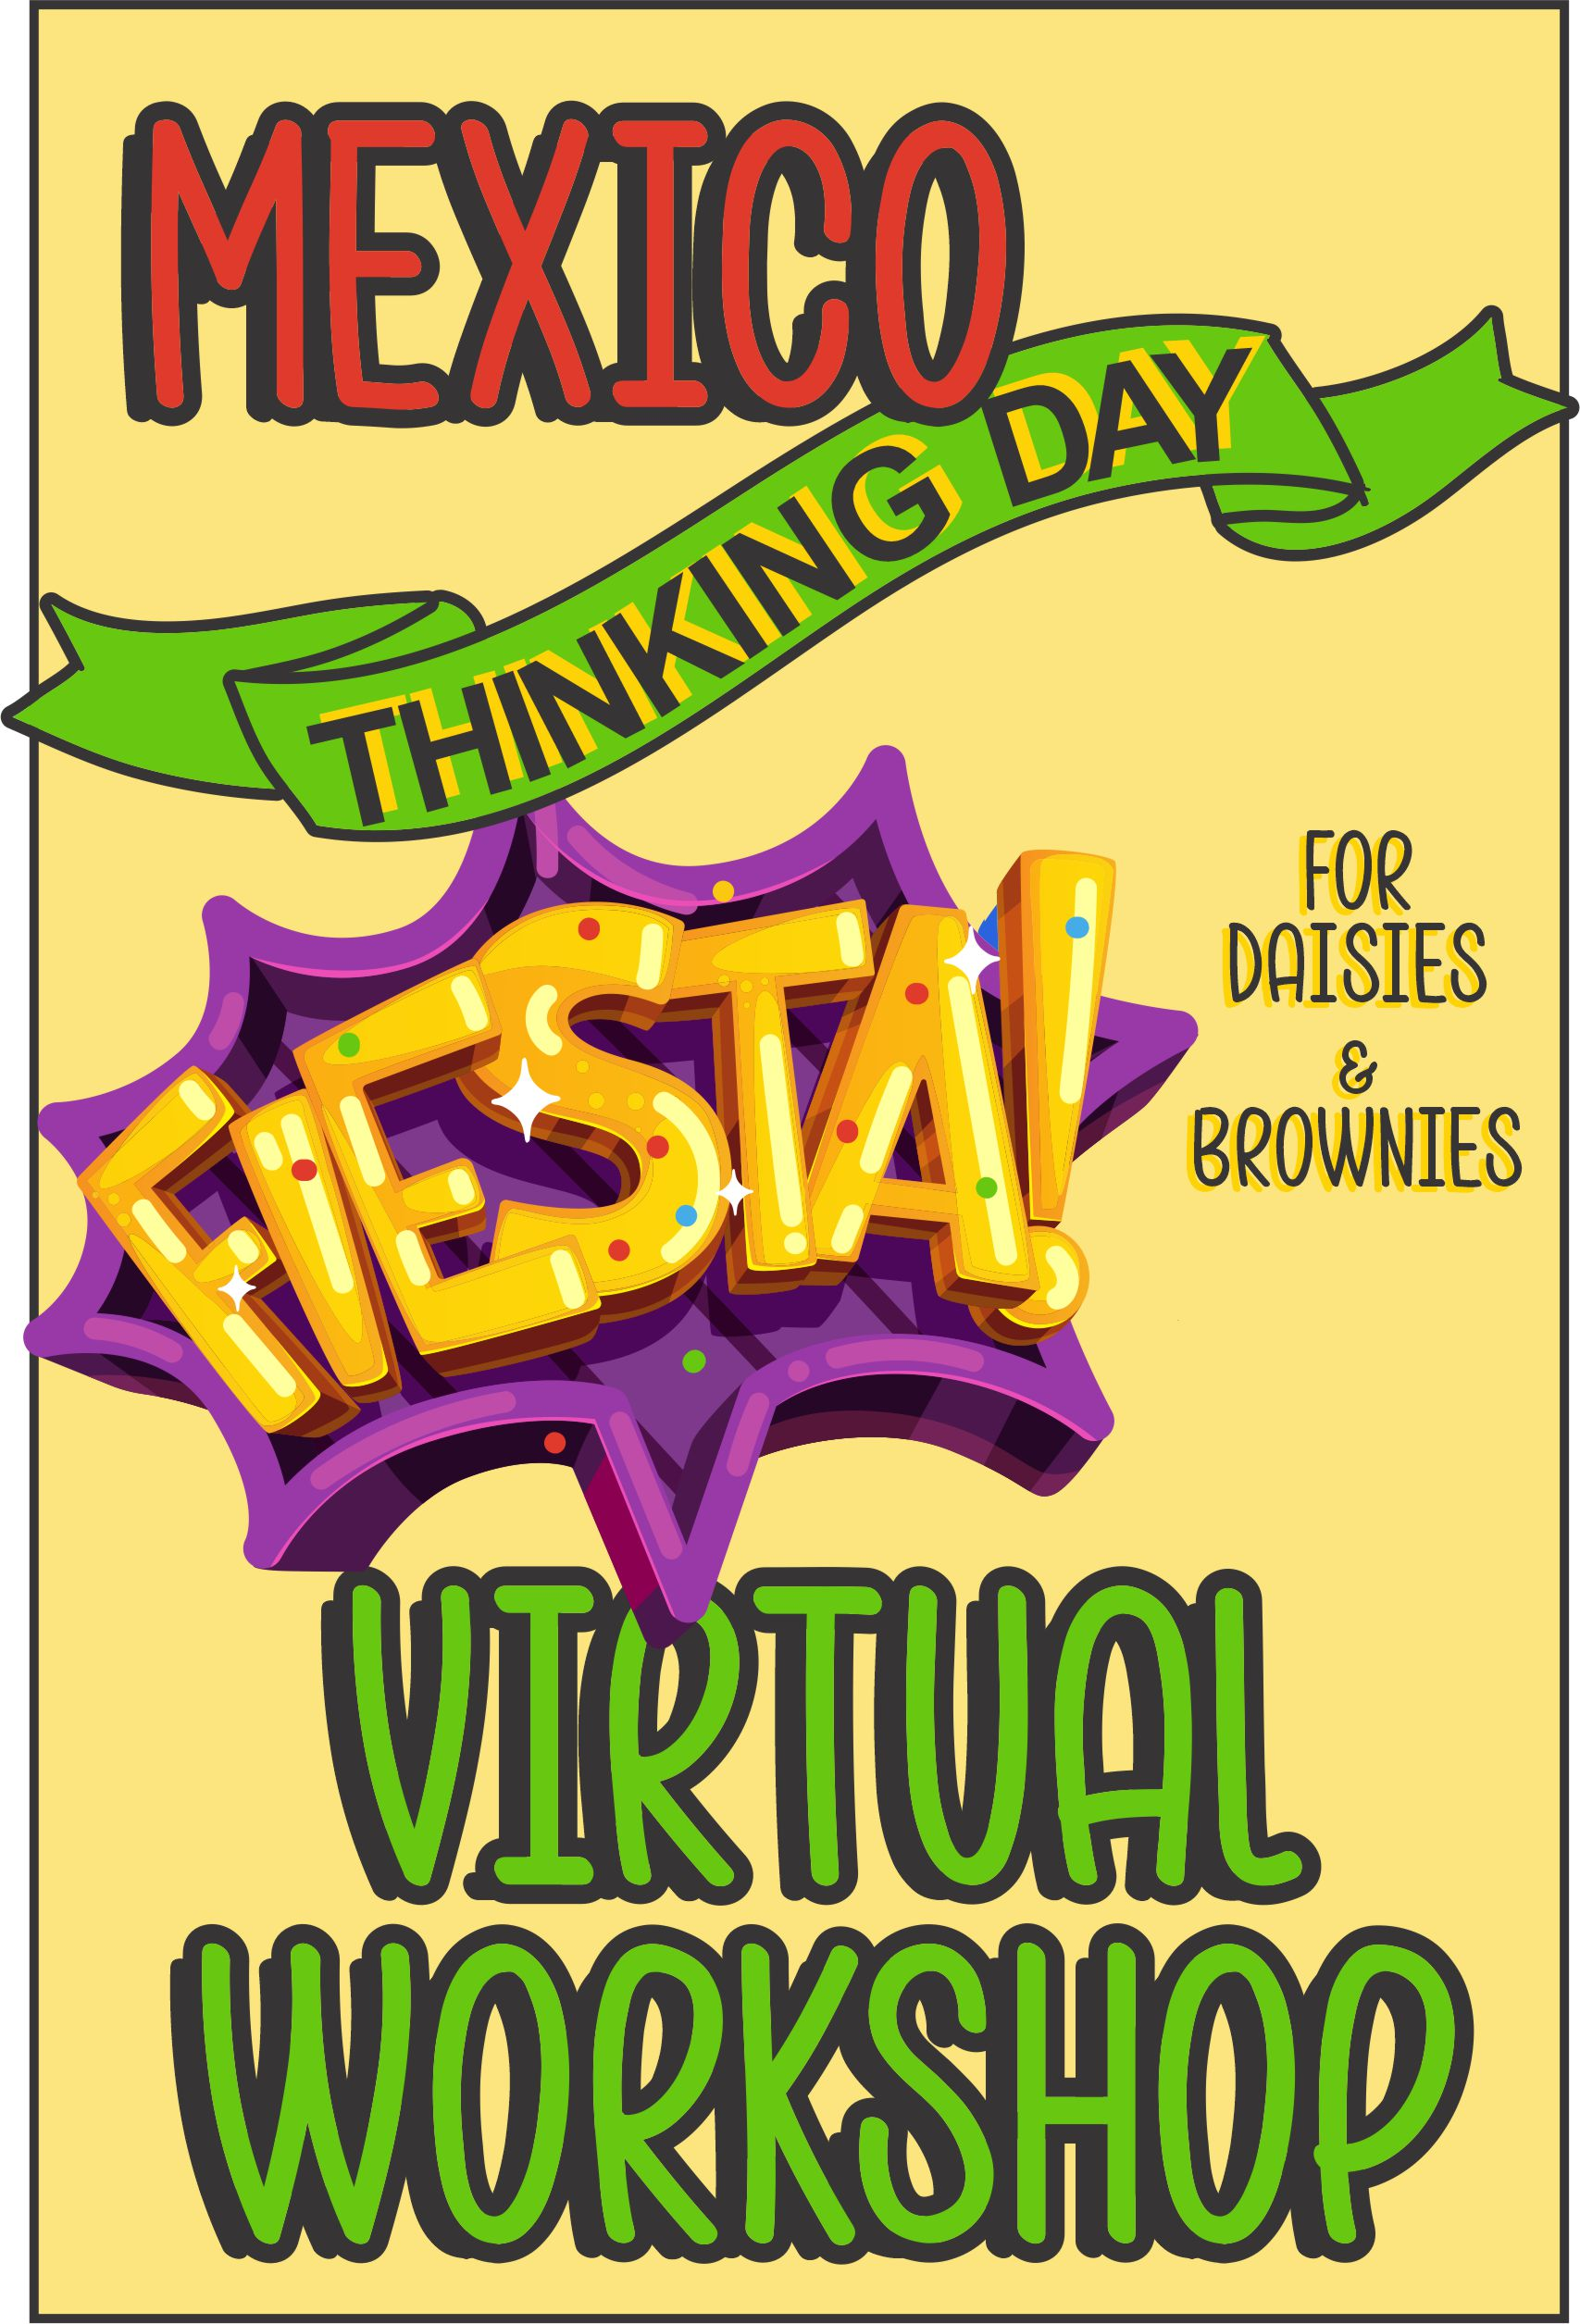 Explore thetraditions, food, clothing, and customs of Mexico~ The price includes all supplies! #makingfriends #virtualclass #virtualworkshop #onlineworkshop #brownie #girlscouts #gsonline #daisy #thnkingday #gsthinkingday #mexico #mexicothinkingday #fiesta via @gsleader411